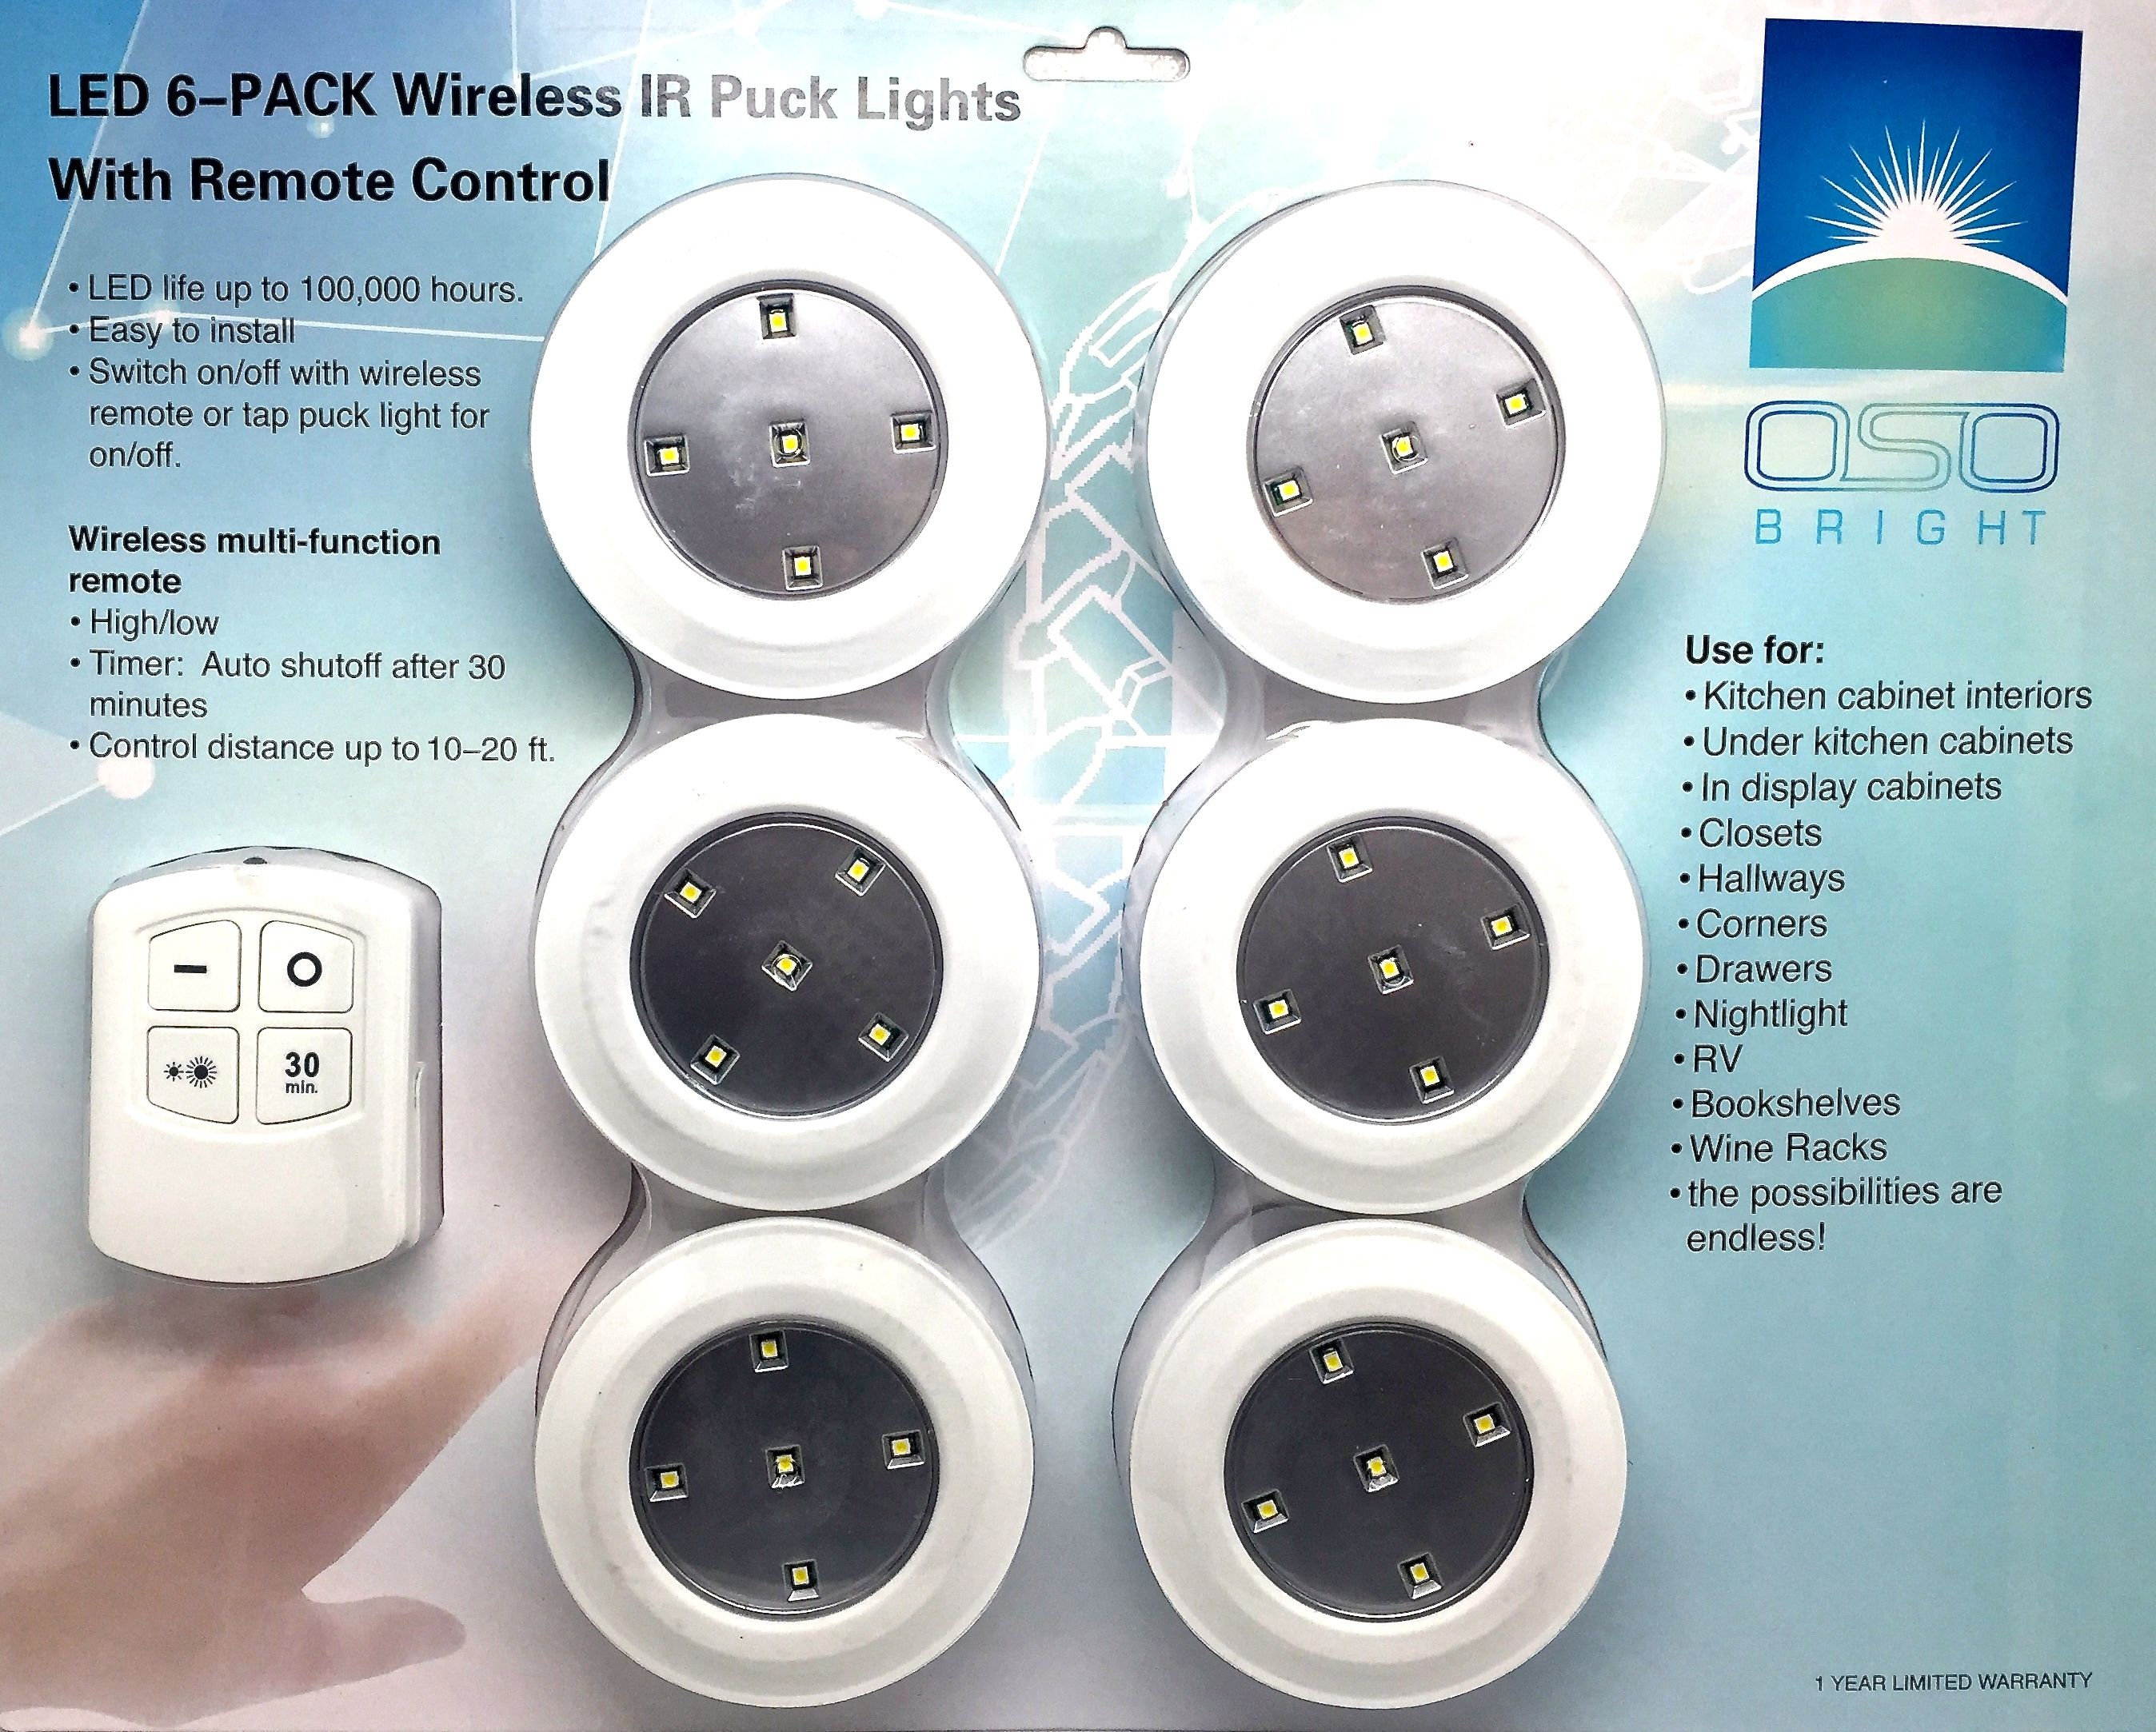 LED Wireless Puck Lights From OSO Bright.Use With Remote Control Or As A  Tap Light,night Light,closet Light Or For Under Counter Lighting To Give  You Bright ...